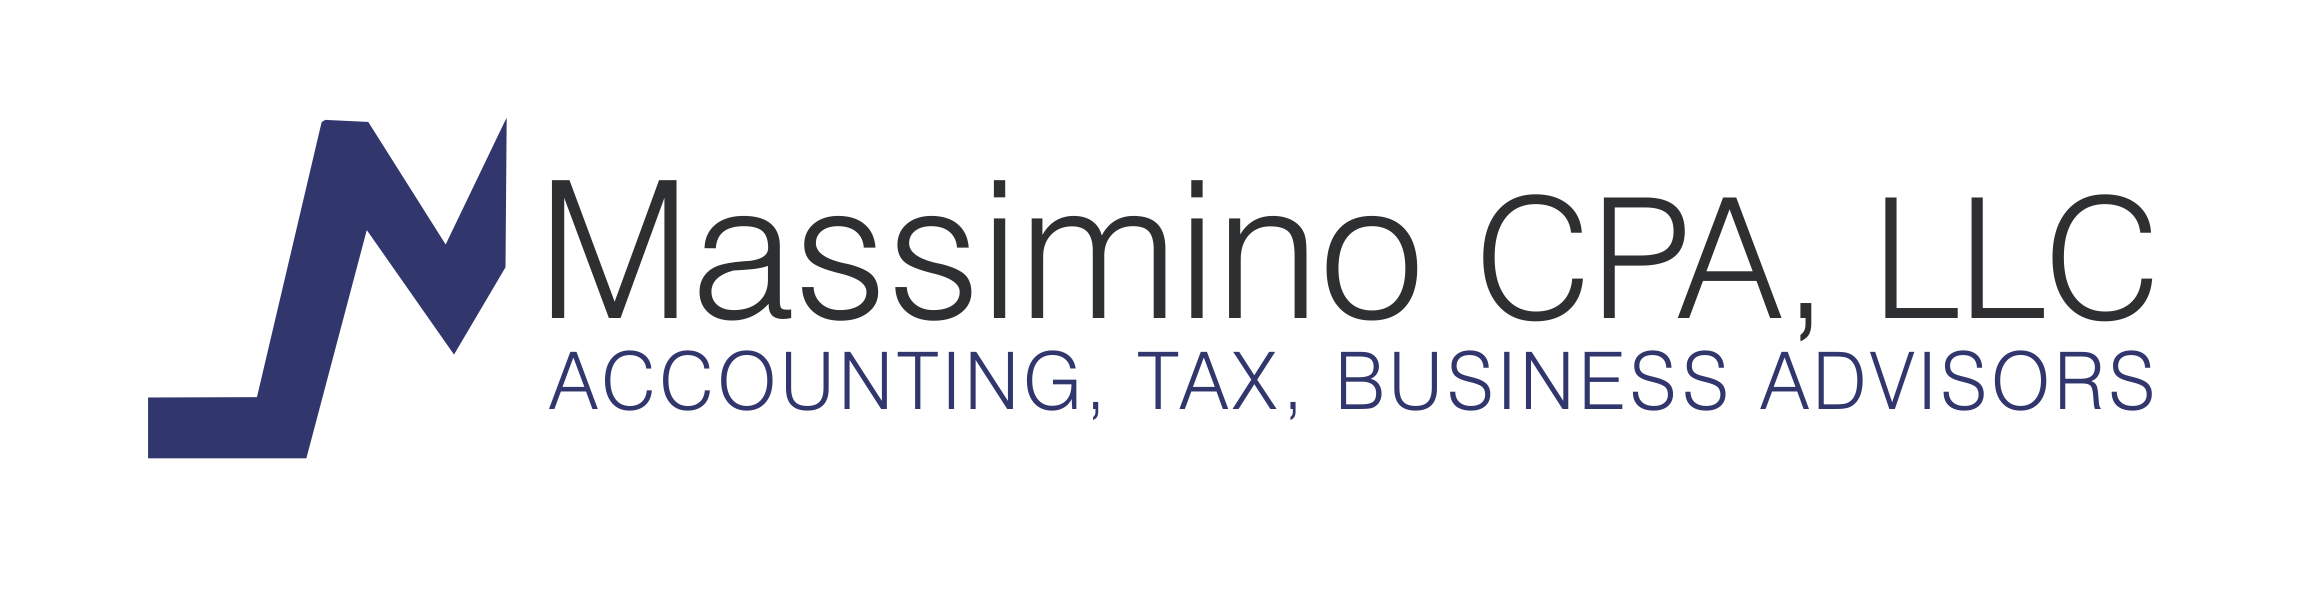 Lowell, MA CPA Firm | Estate Planning Page | Massimino CPA, LLC